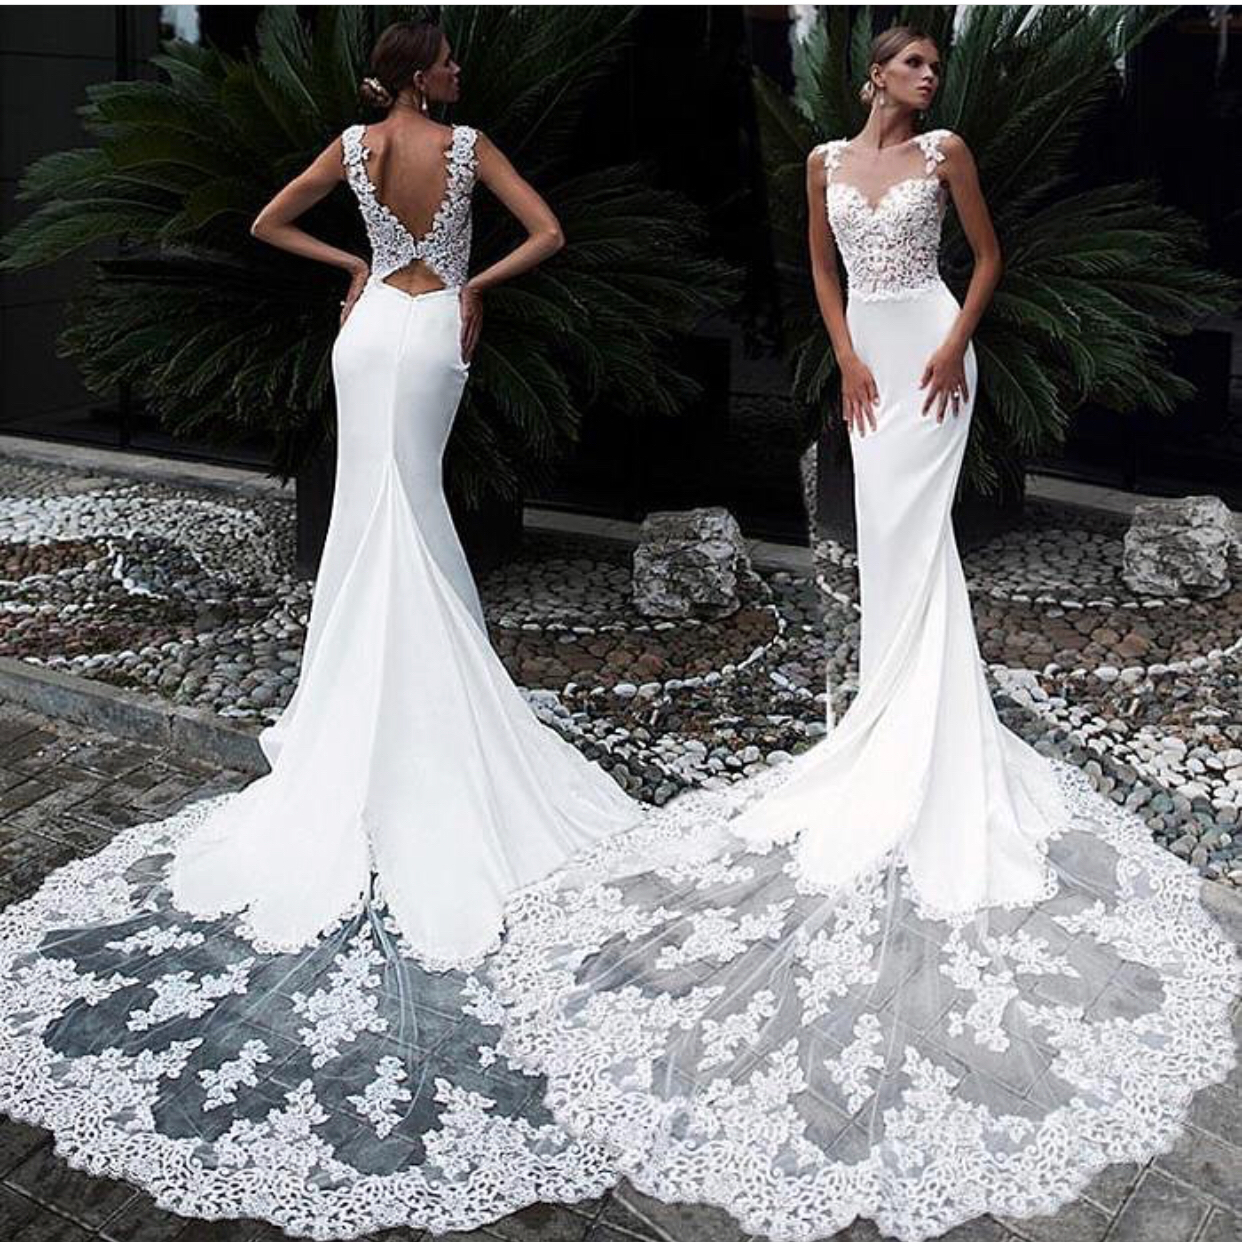 Mermaid Lace Wedding Gown: Mermaid Wedding Dress, Lace Applique Wedding Dress, Sexy